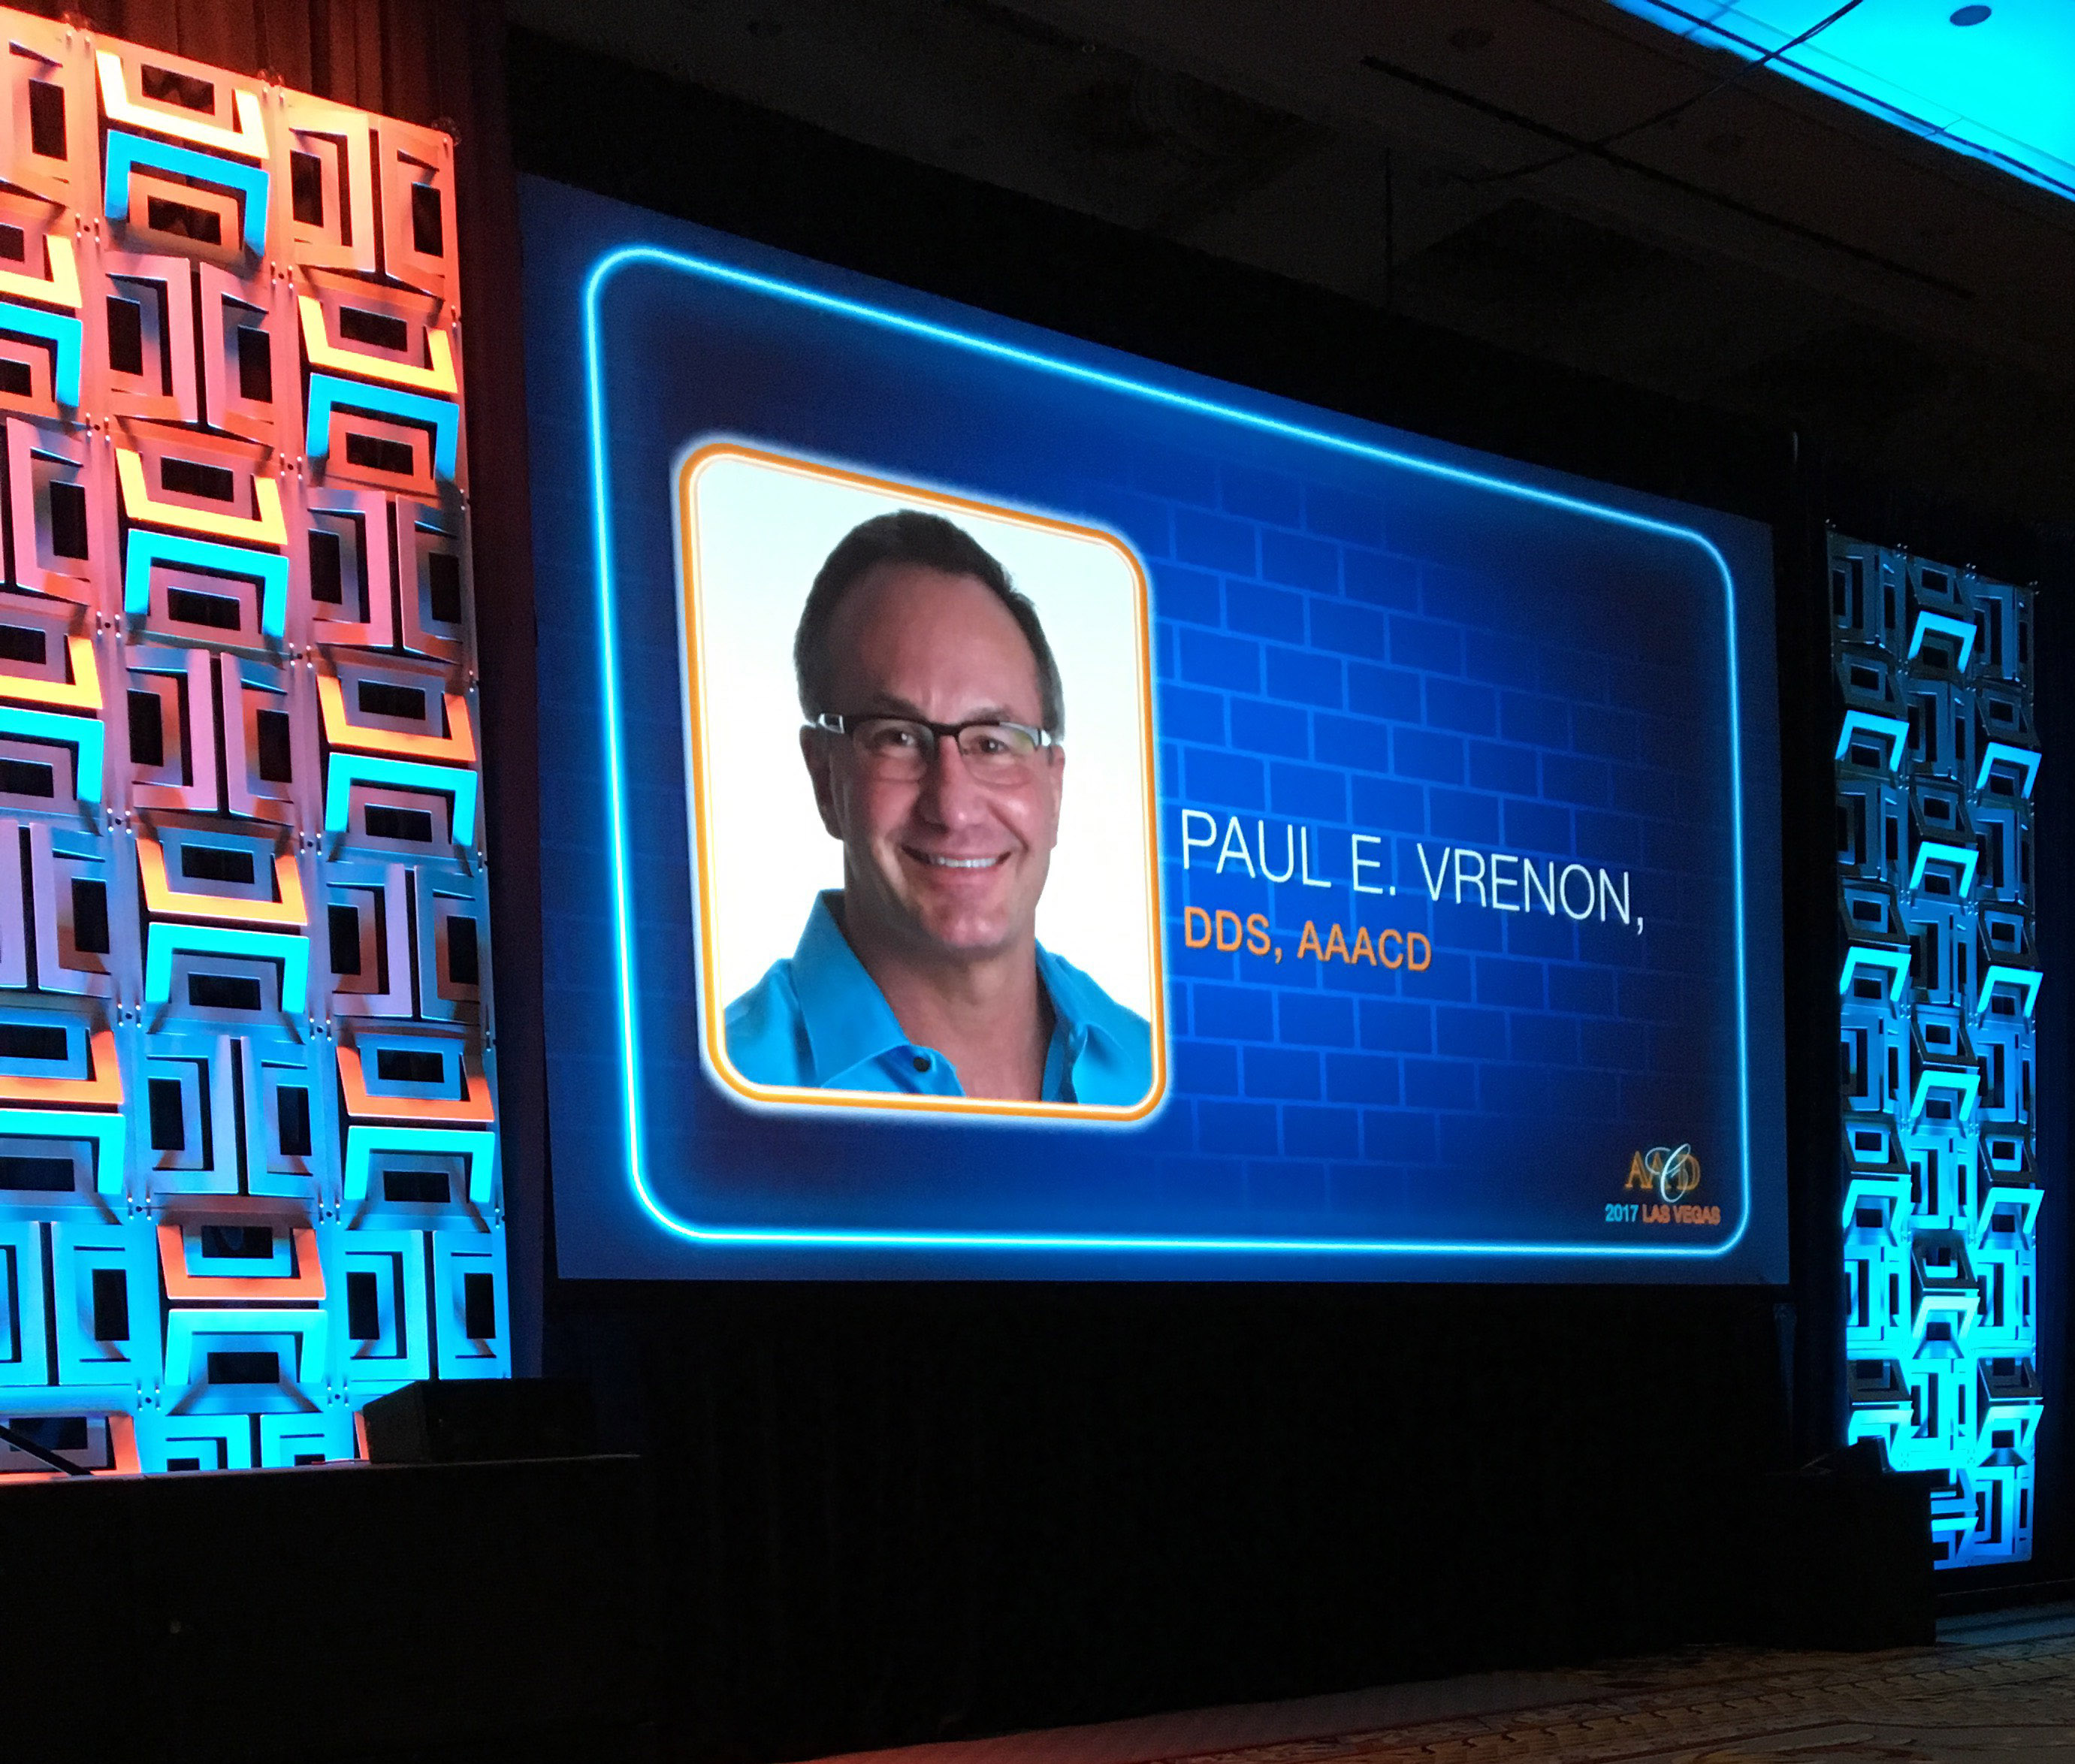 DR. PAUL VRENON TO RECEIVE AMERICAN ACADEMY OF COSMETIC DENTISTRY ACCREDITATION AWARD